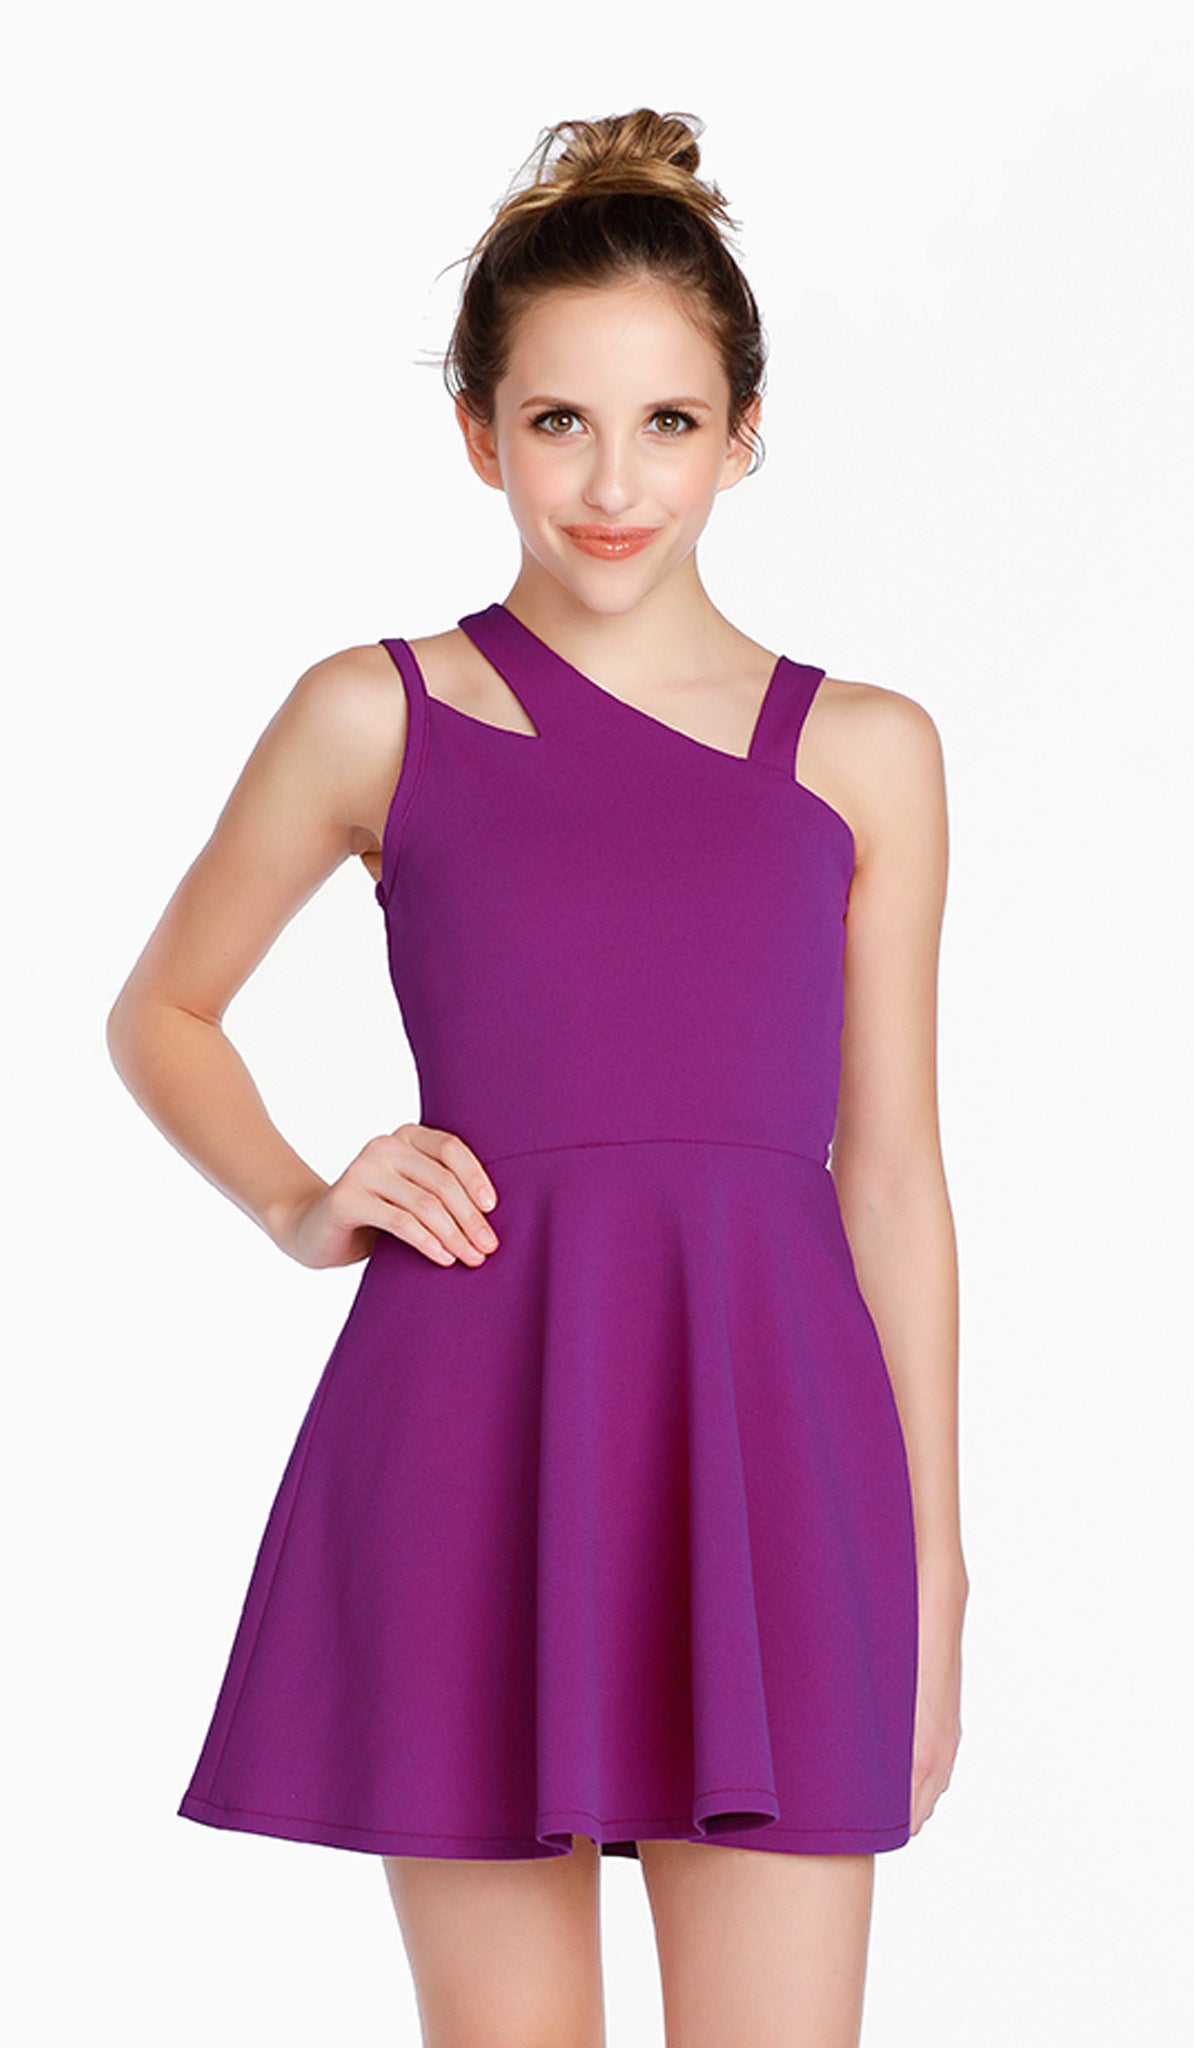 THE SABRINA DRESS - Sallymiller.com - [variant title] - | Event & Party Dresses for Tween Girls & Juniors | Weddings Dresses, Bat Mitzvah Dresses, Sweet Sixteen Dresses, Graduation Dresses, Birthday Party Dresses, Bar Mitzvah Dresses, Cotillion Dresses